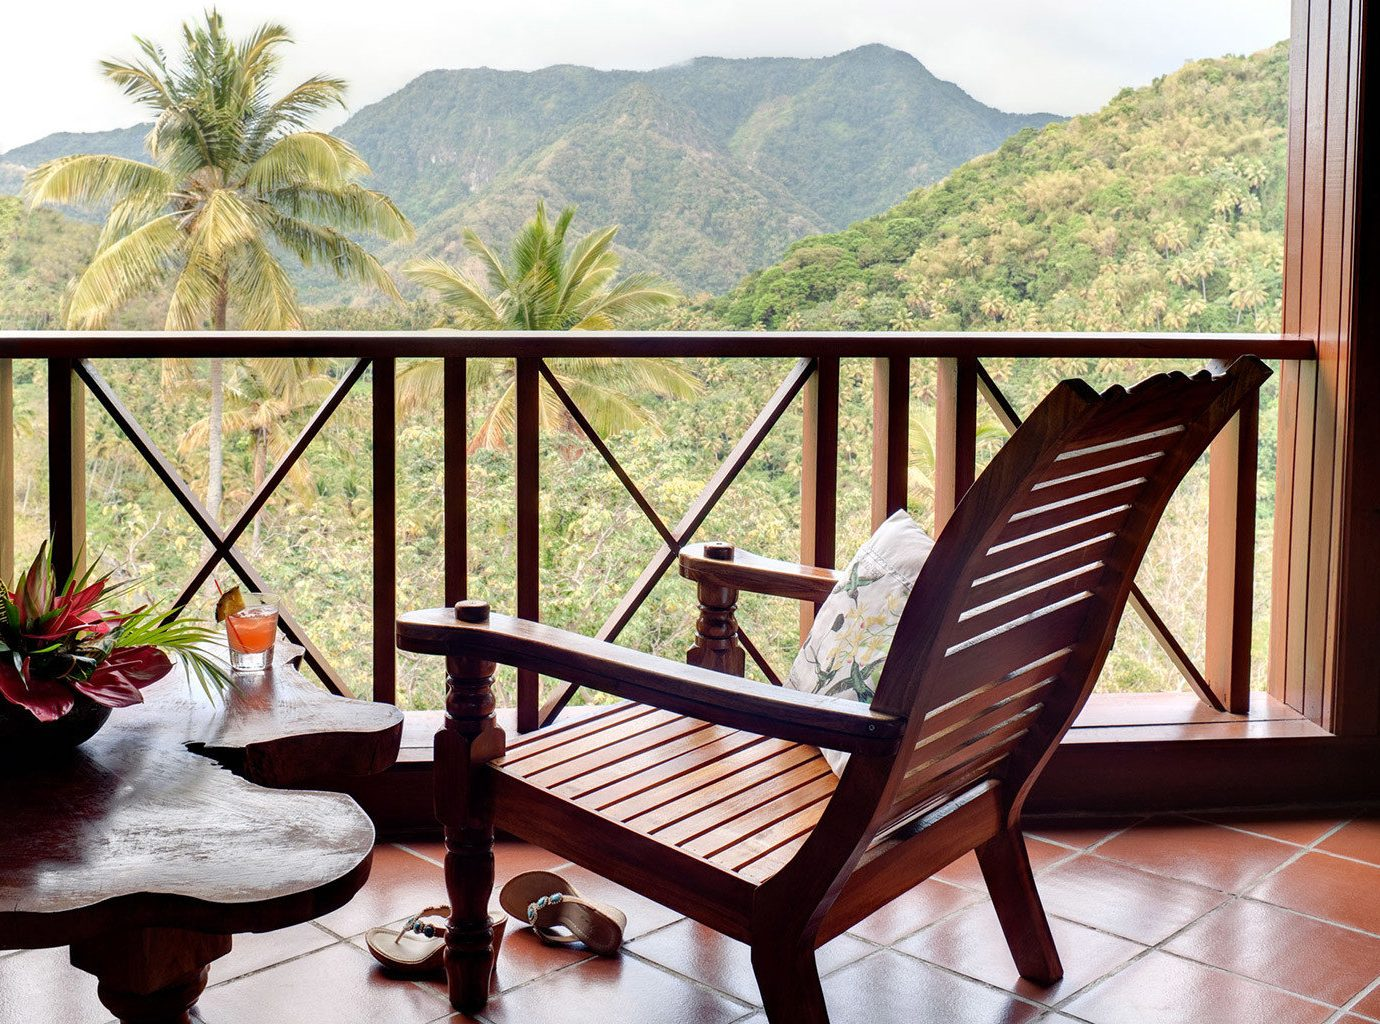 Adult-only Deck Honeymoon Hotels Luxury Luxury Travel Resort Romance Scenic views mountain building property furniture home interior design cottage estate porch